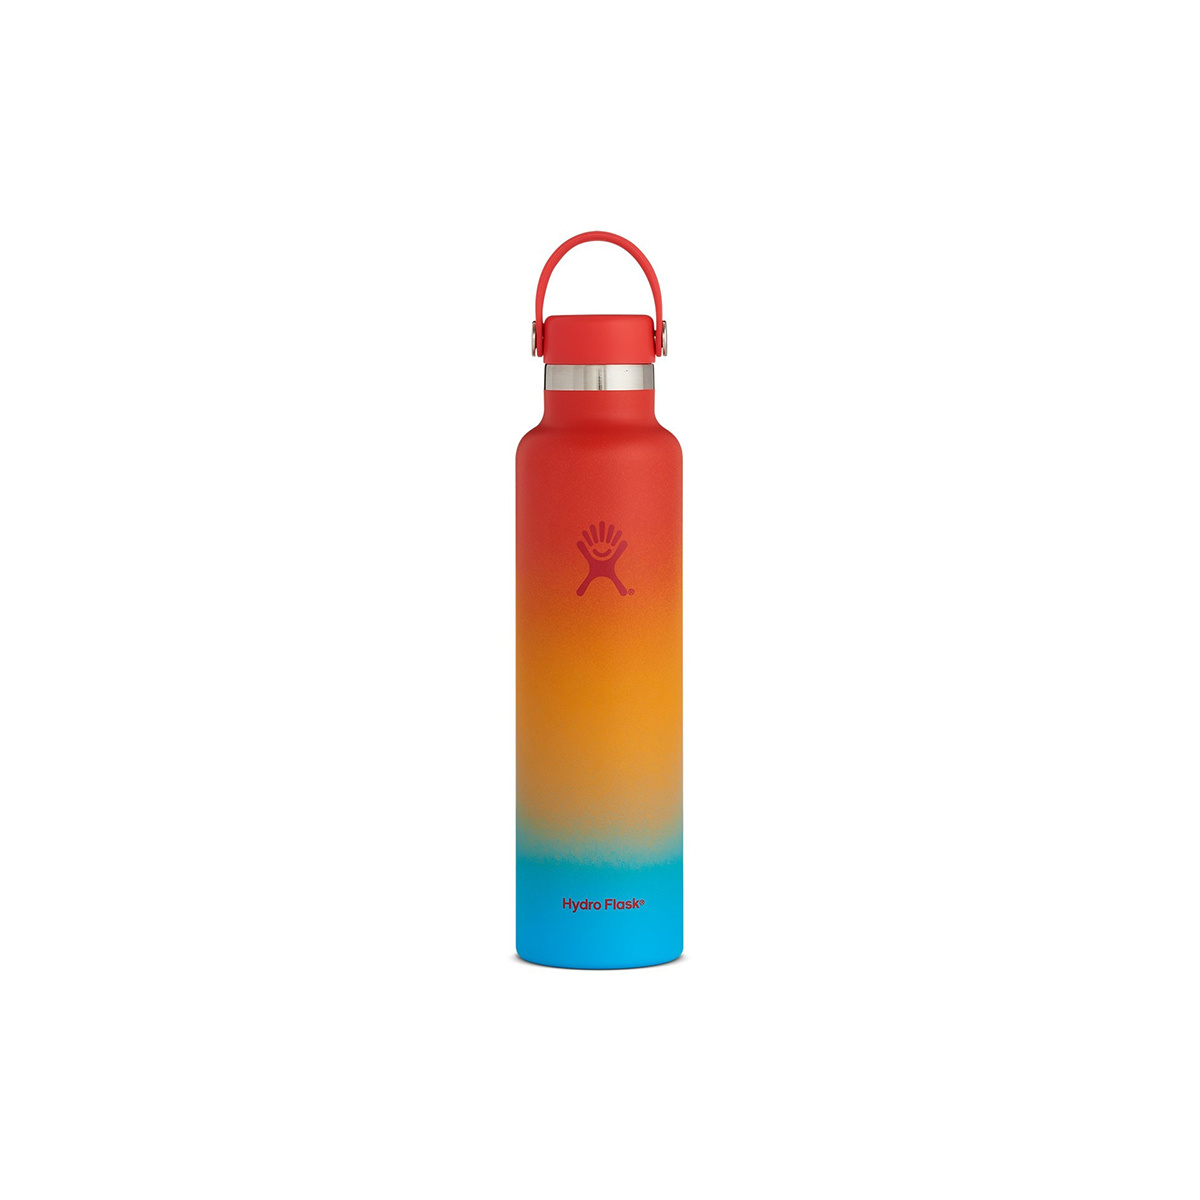 Hydro Flask Shave Ice LE 24oz Standard Mouth